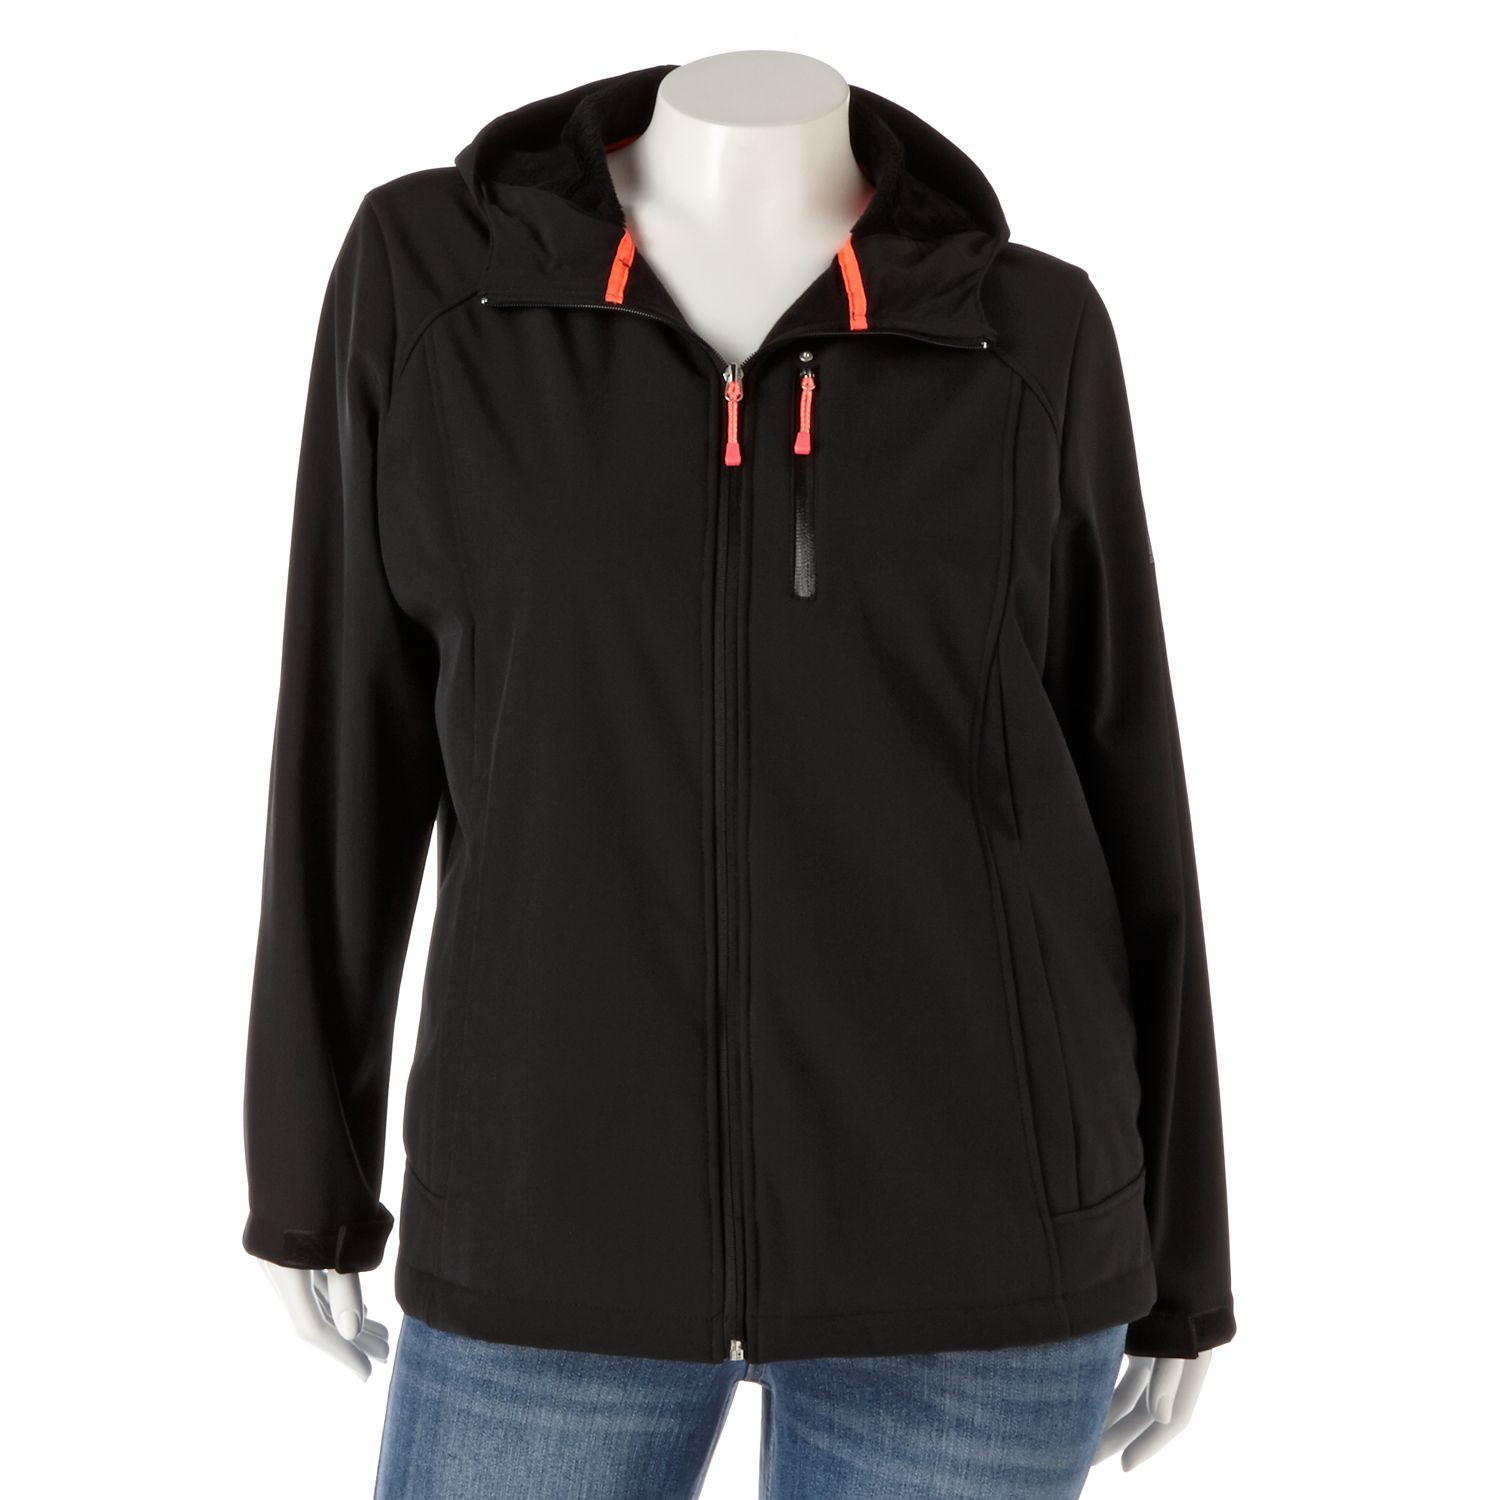 ZeroXposur Hooded Soft Shell Jacket - Women's Plus